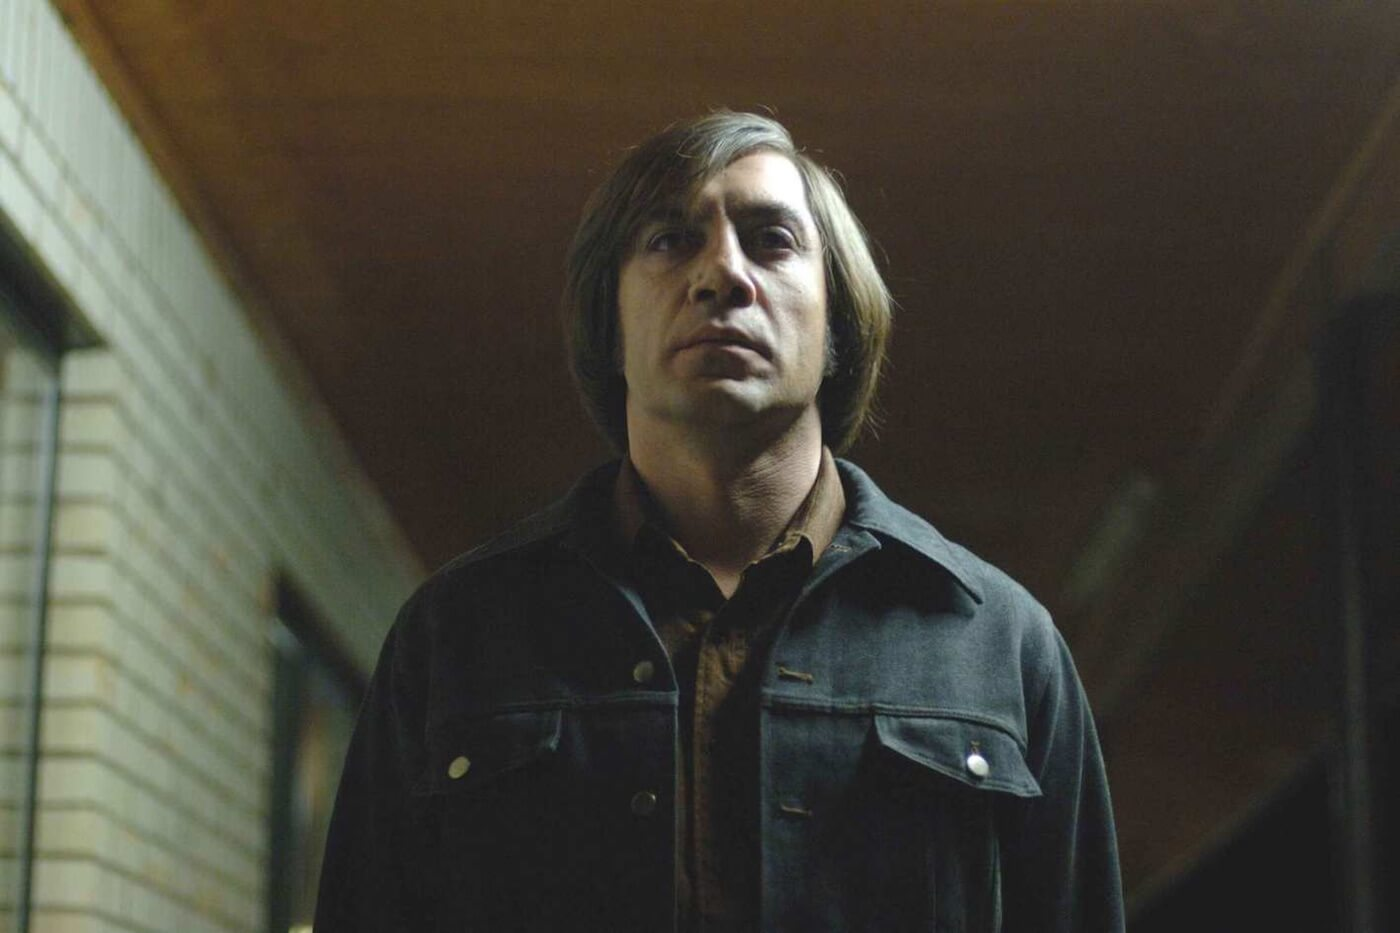 Ultimate Guide To Camera Shots - A Low Angle Shoulder Level Shot From No Country For Old Men